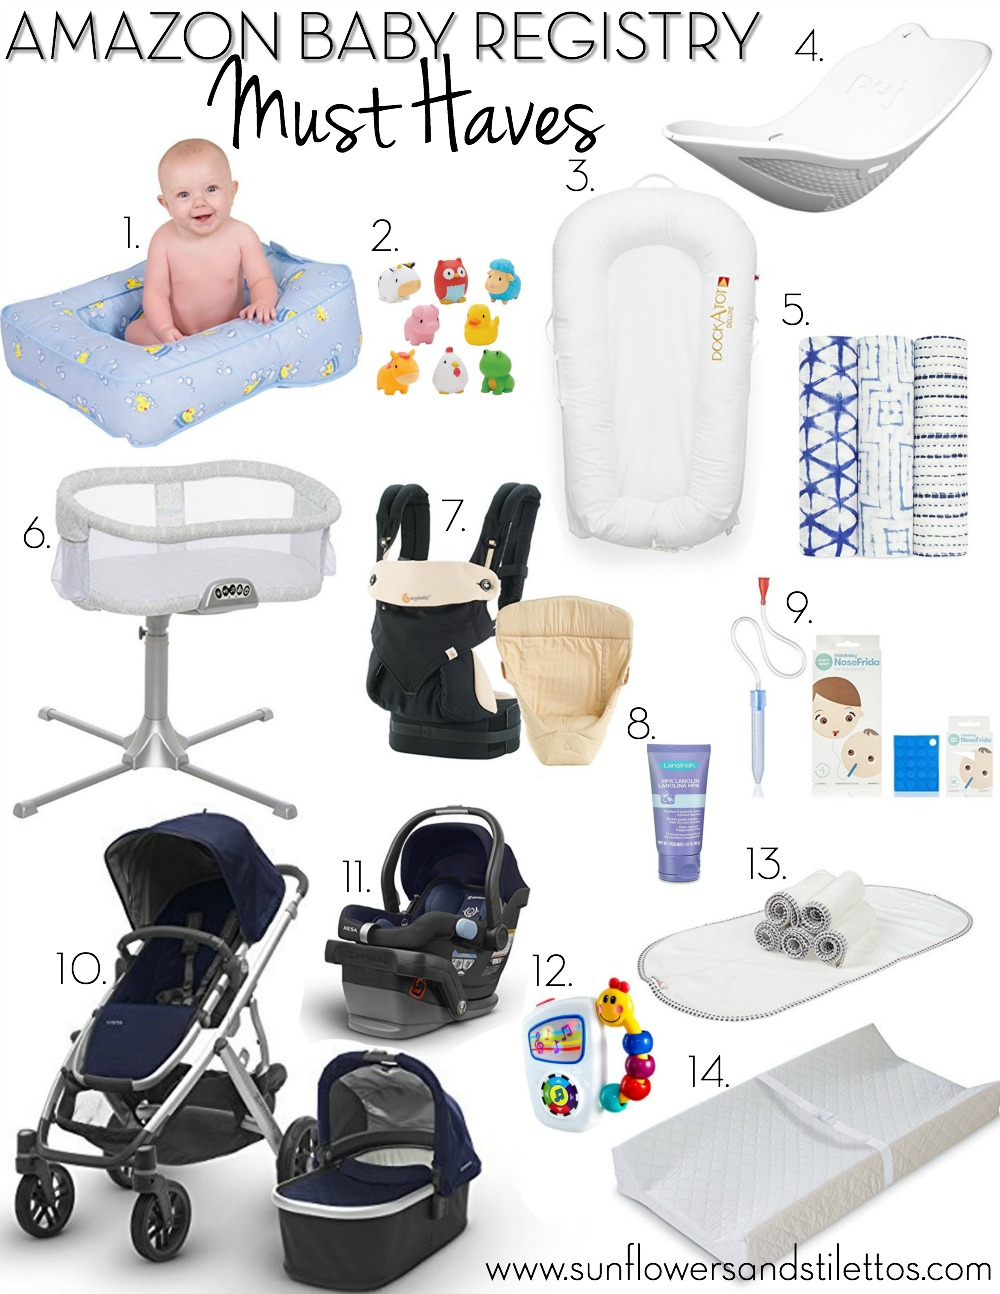 Amazon Baby Registry Must Haves by Sunflowers and Stilettos blog _ best baby items _ newborn essentials